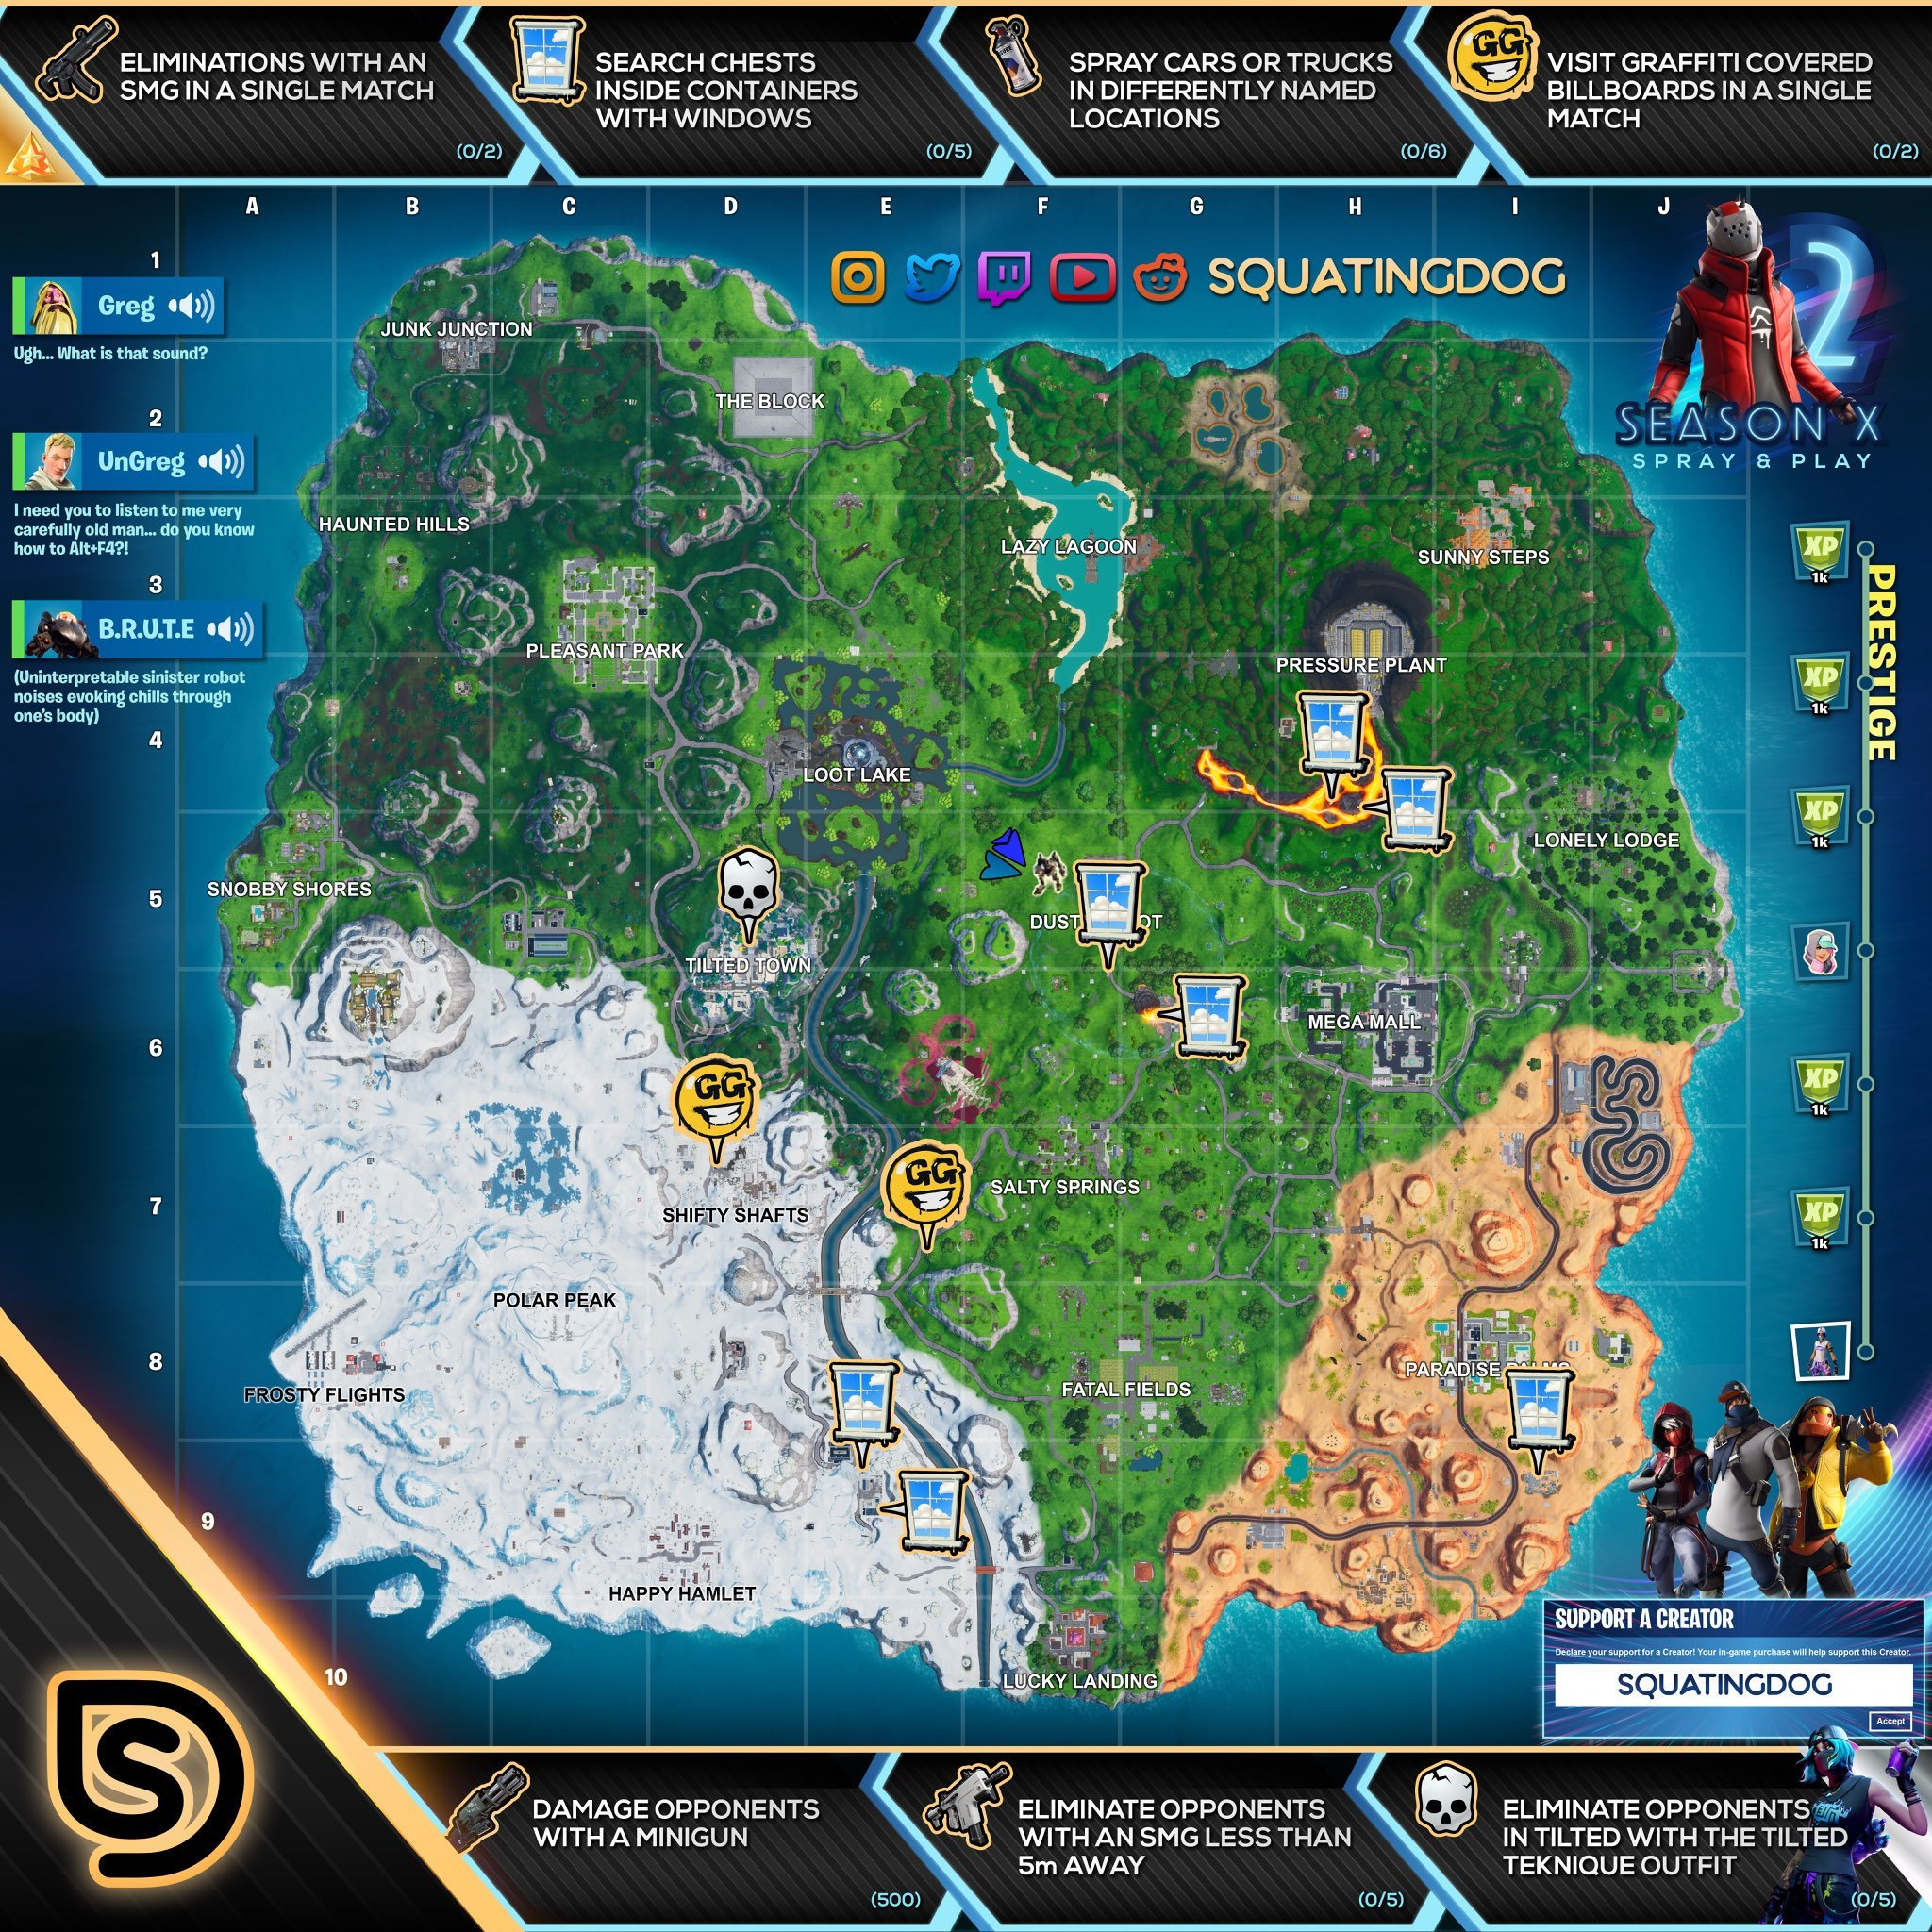 Fortnite Season X Week 2 Spray & Pray Prestige Challenges Cheat Sheet